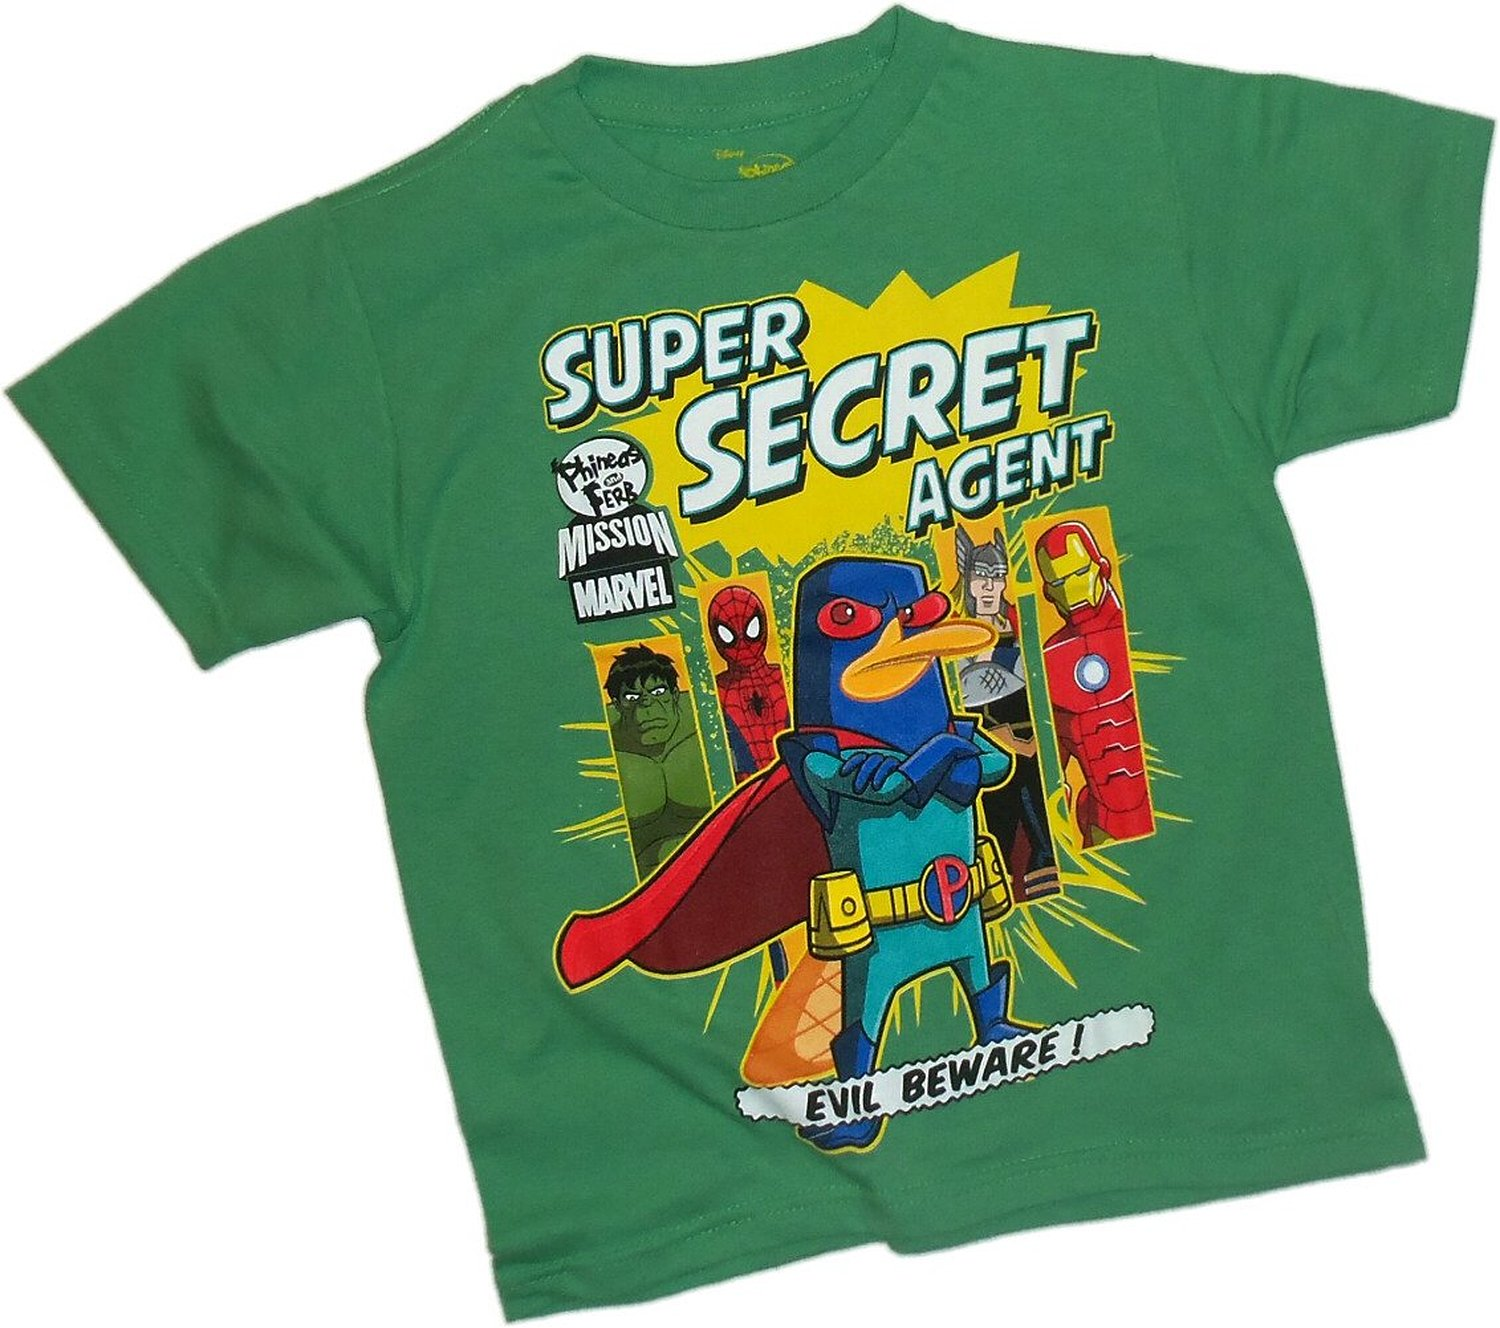 Phineas And Ferb Guitar: Disney Super Secret Agent Phineas And Ferb Mission Marvel